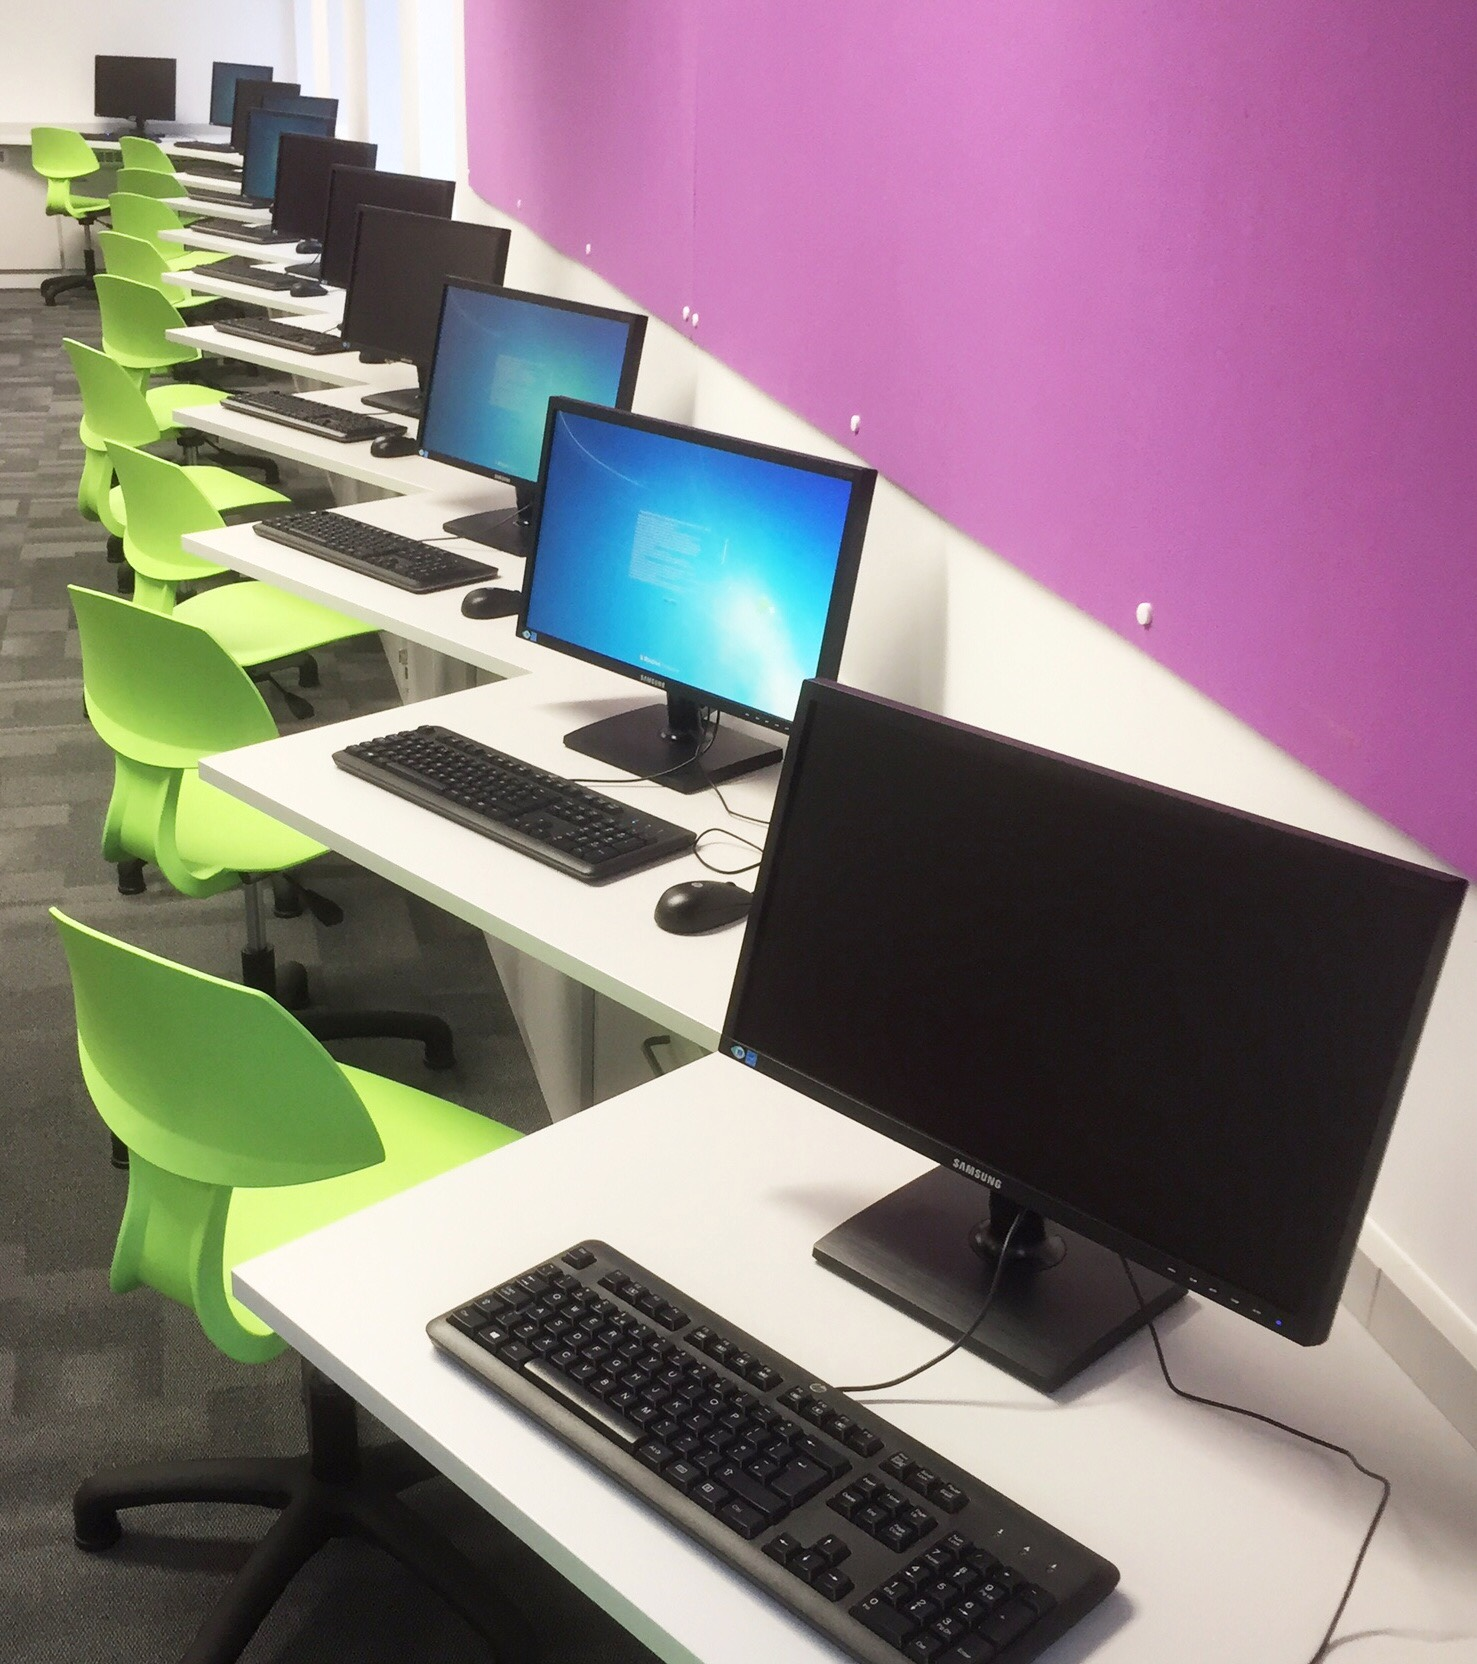 Educational Office Furniture AJT Associated Joinery Techniques.jpg